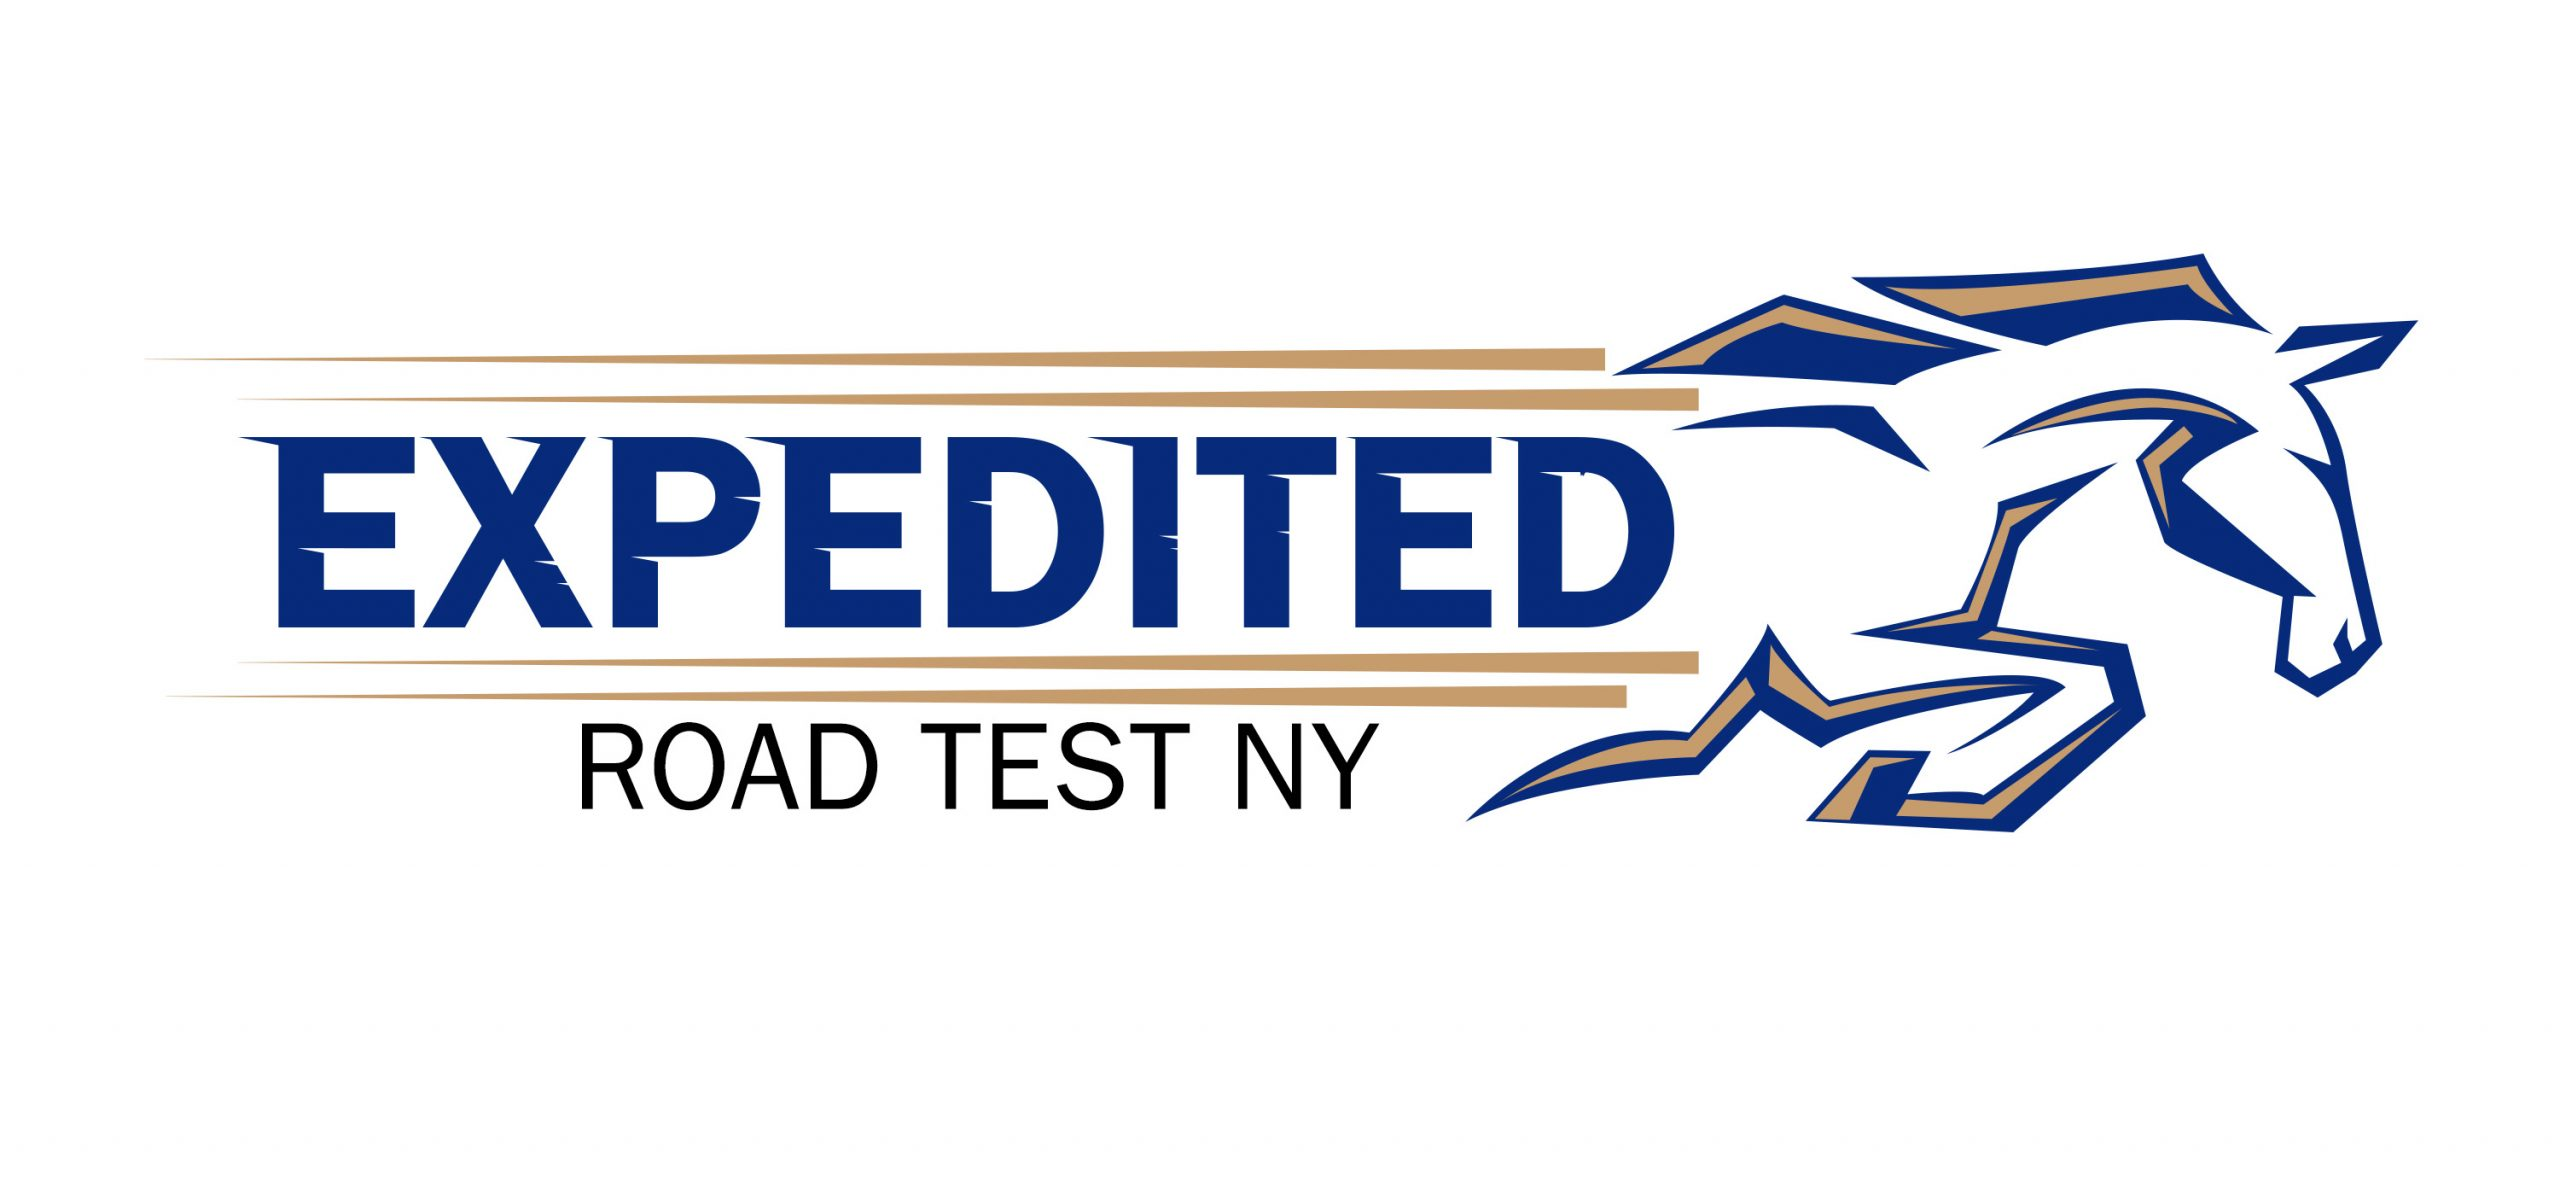 Expedited Road Test NY